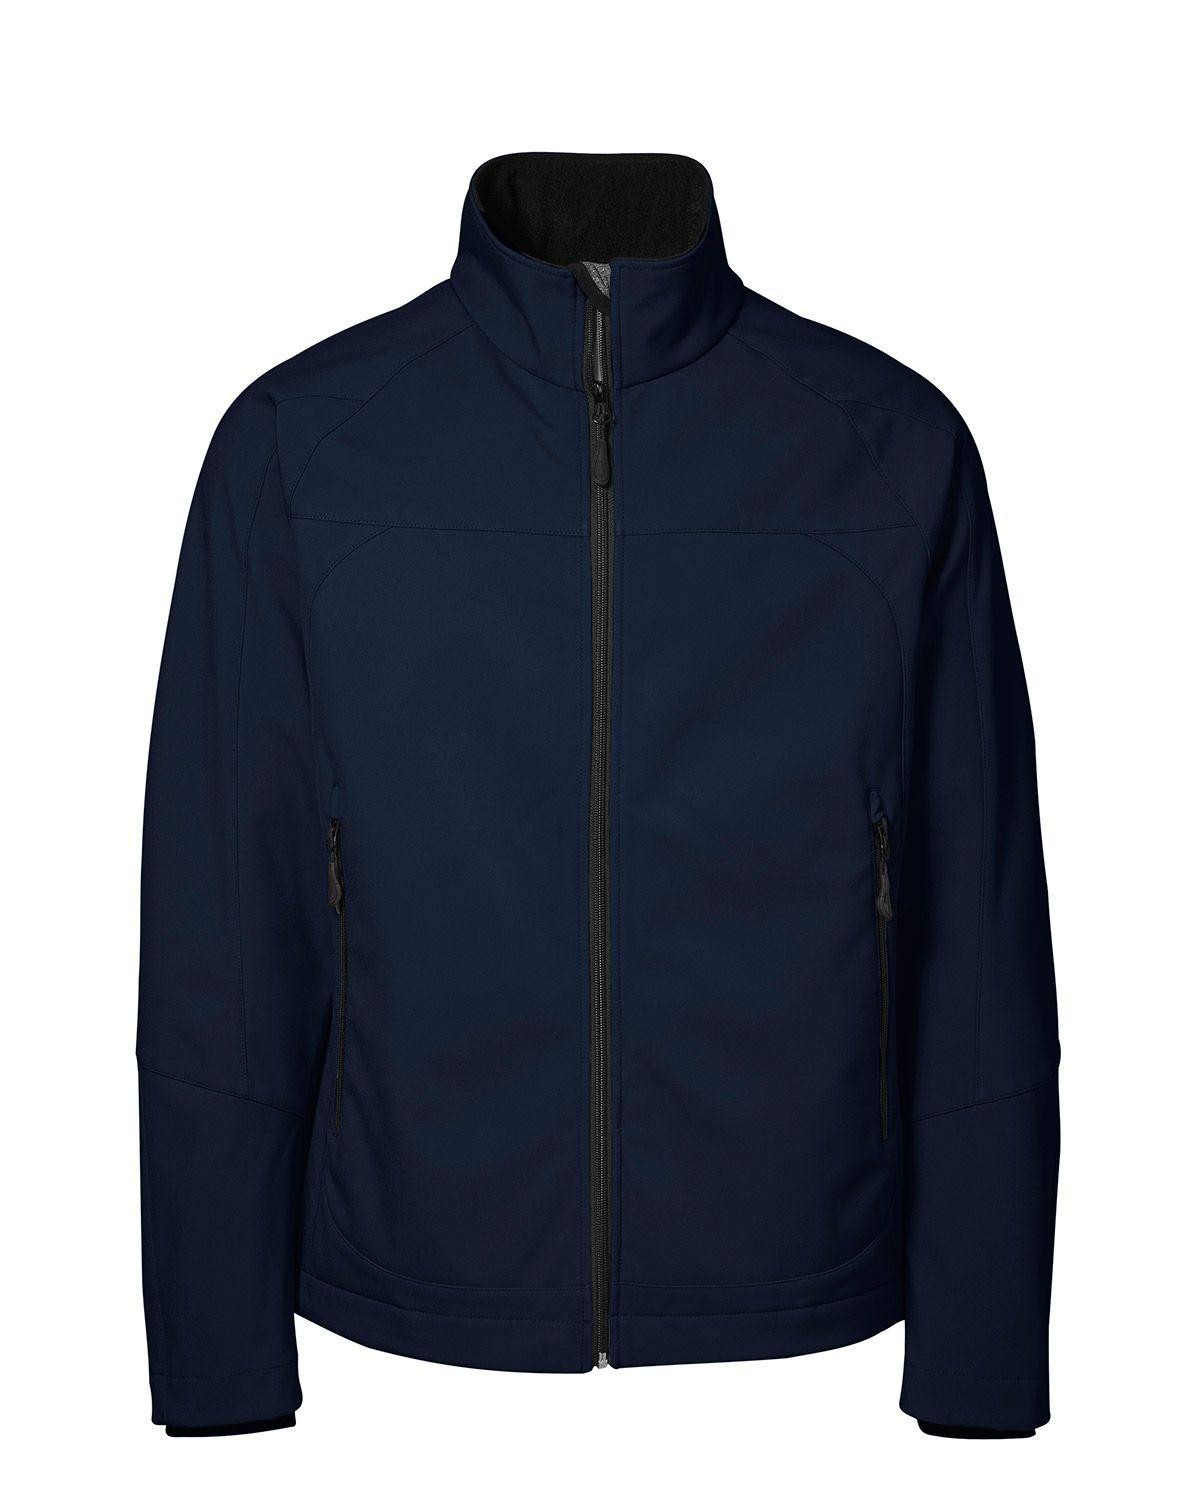 Image of   ID Funktionel Softshell Jakke (Navy, L)